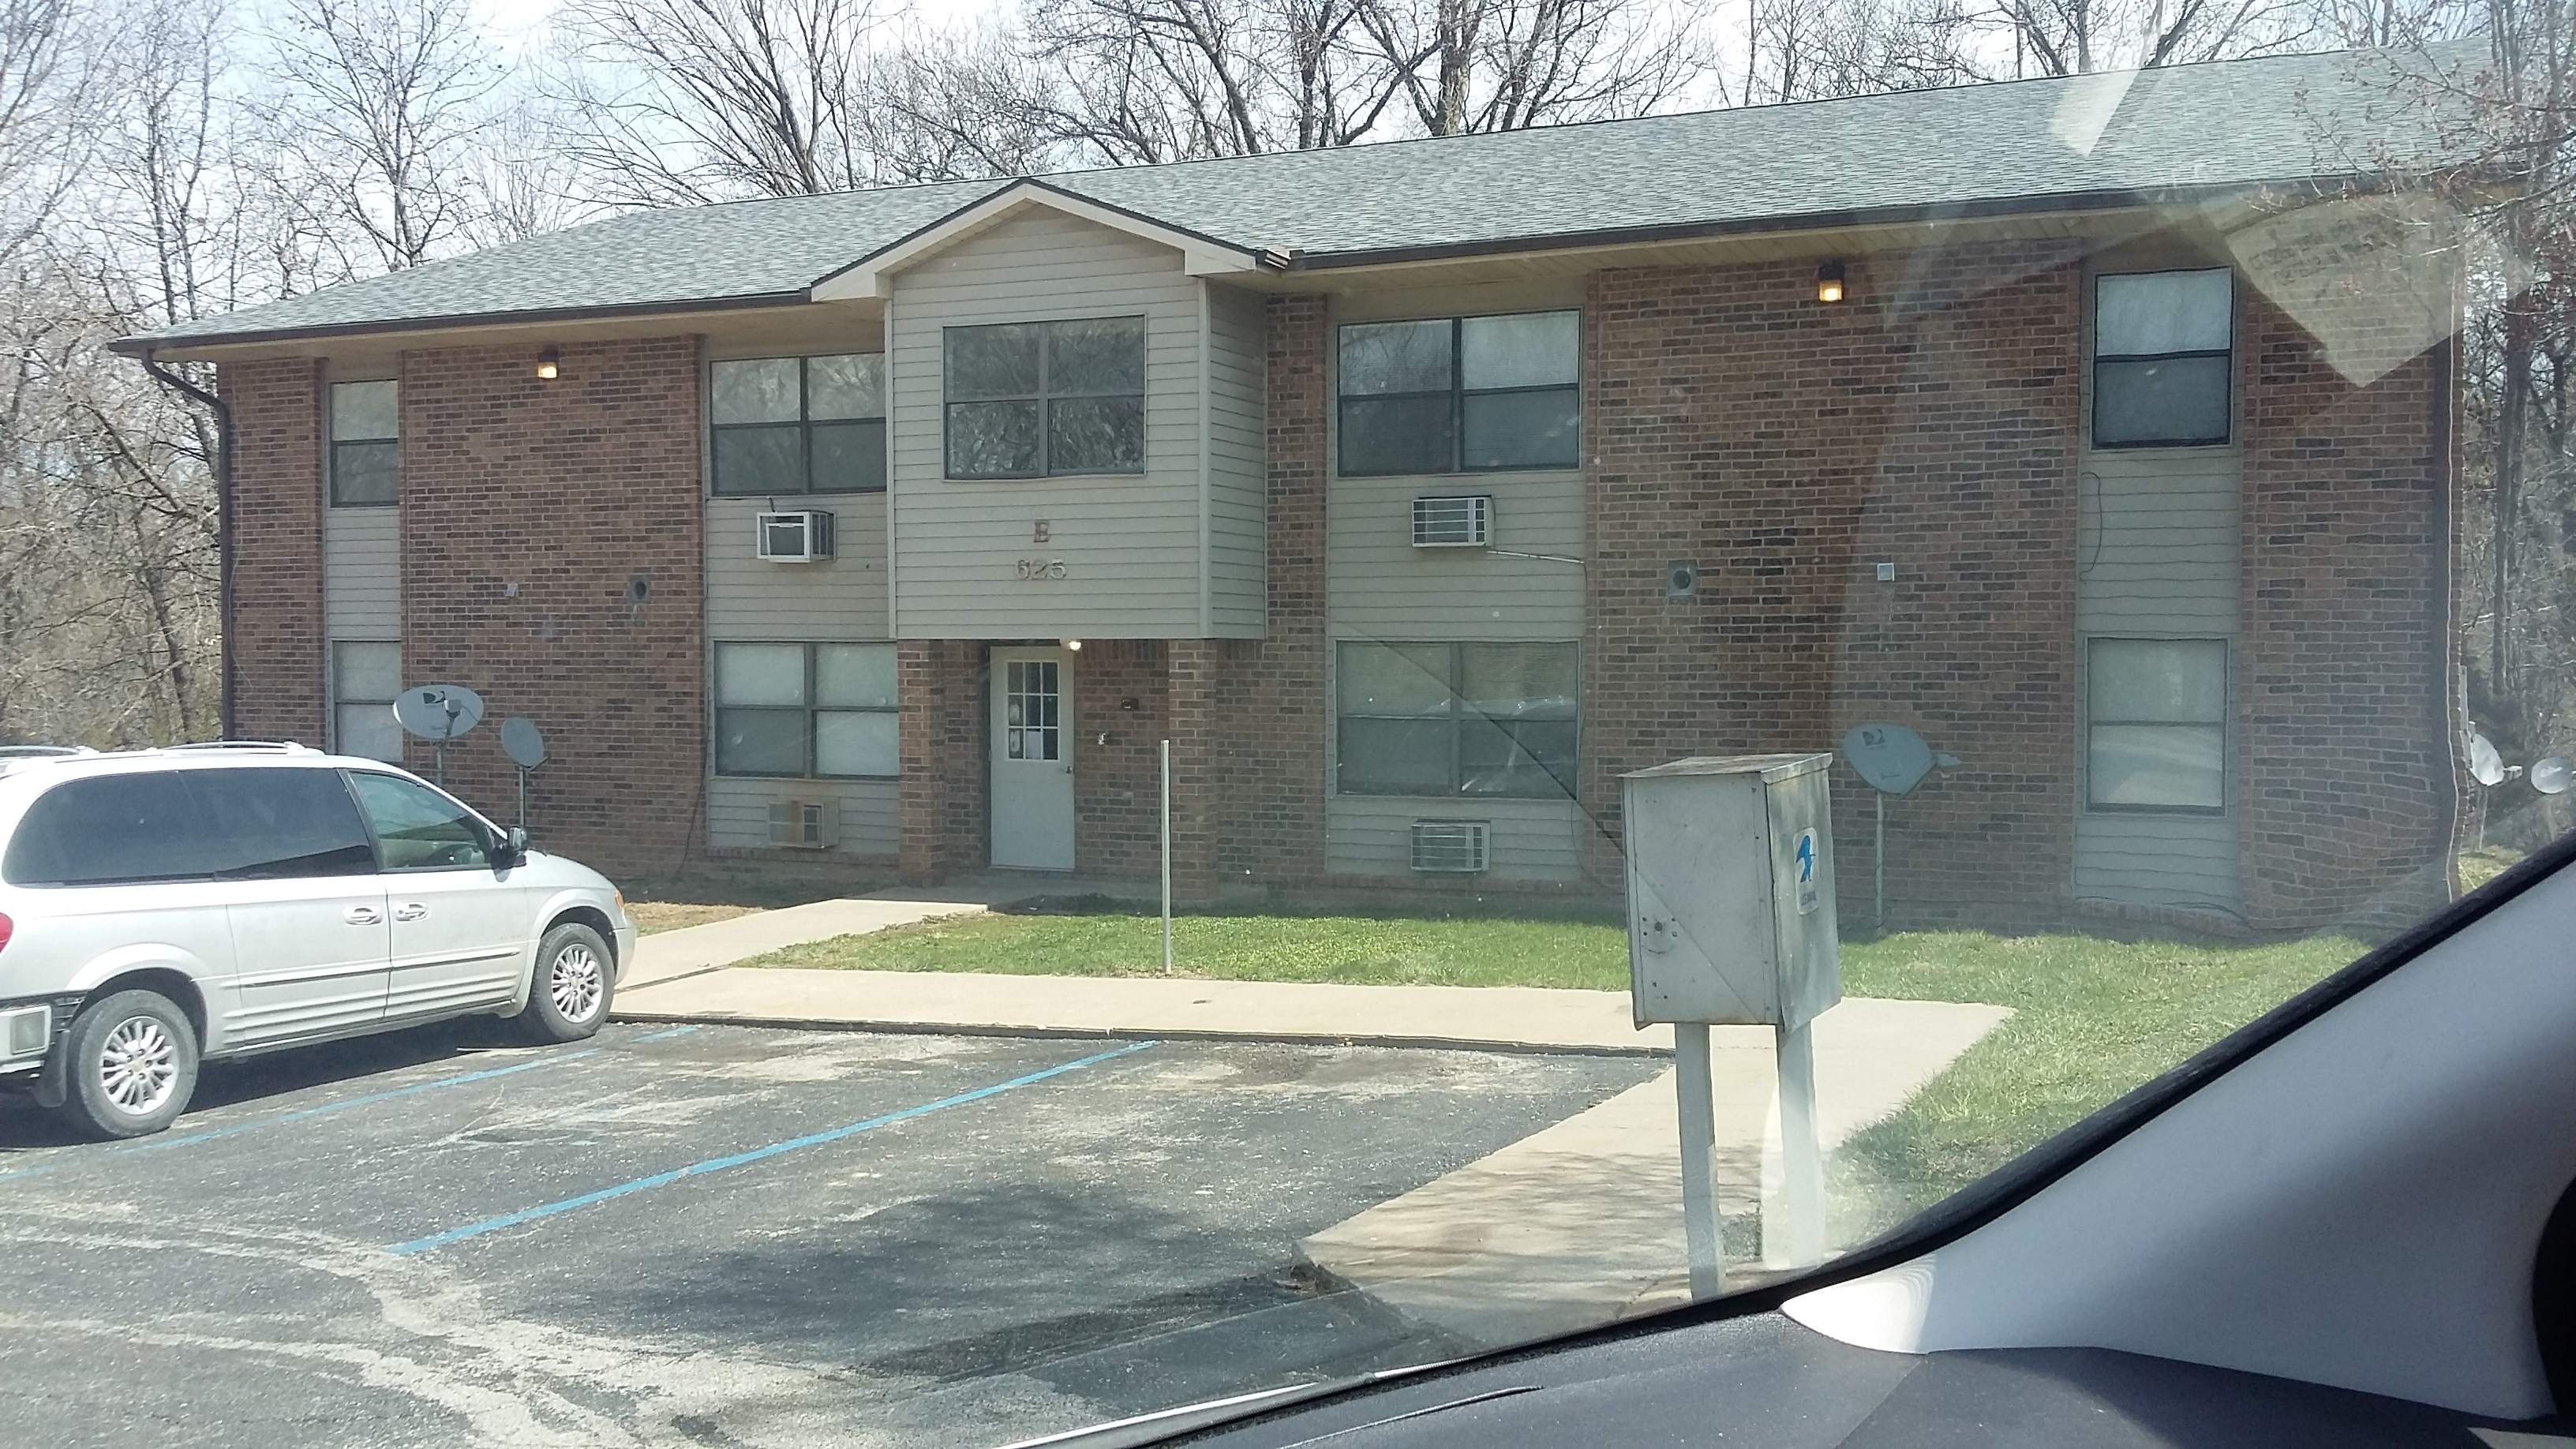 Image of Springridge II Apartments in Warrensburg, Missouri